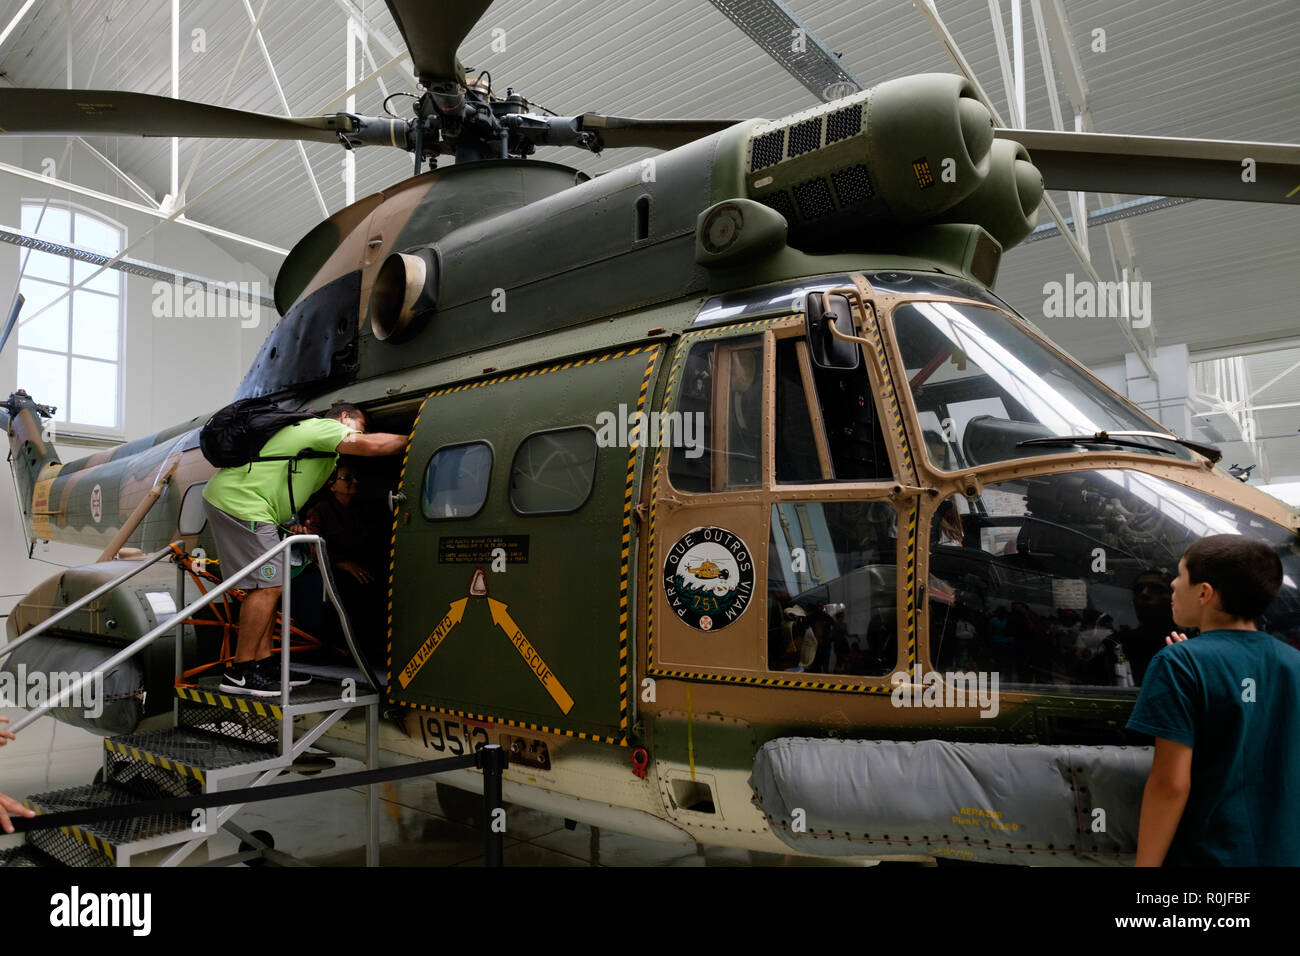 The Air Museum - Museu do Ar - aviation museum of the portuguese Air Force in Sintra Air Base, Portugal, Europe - Stock Image